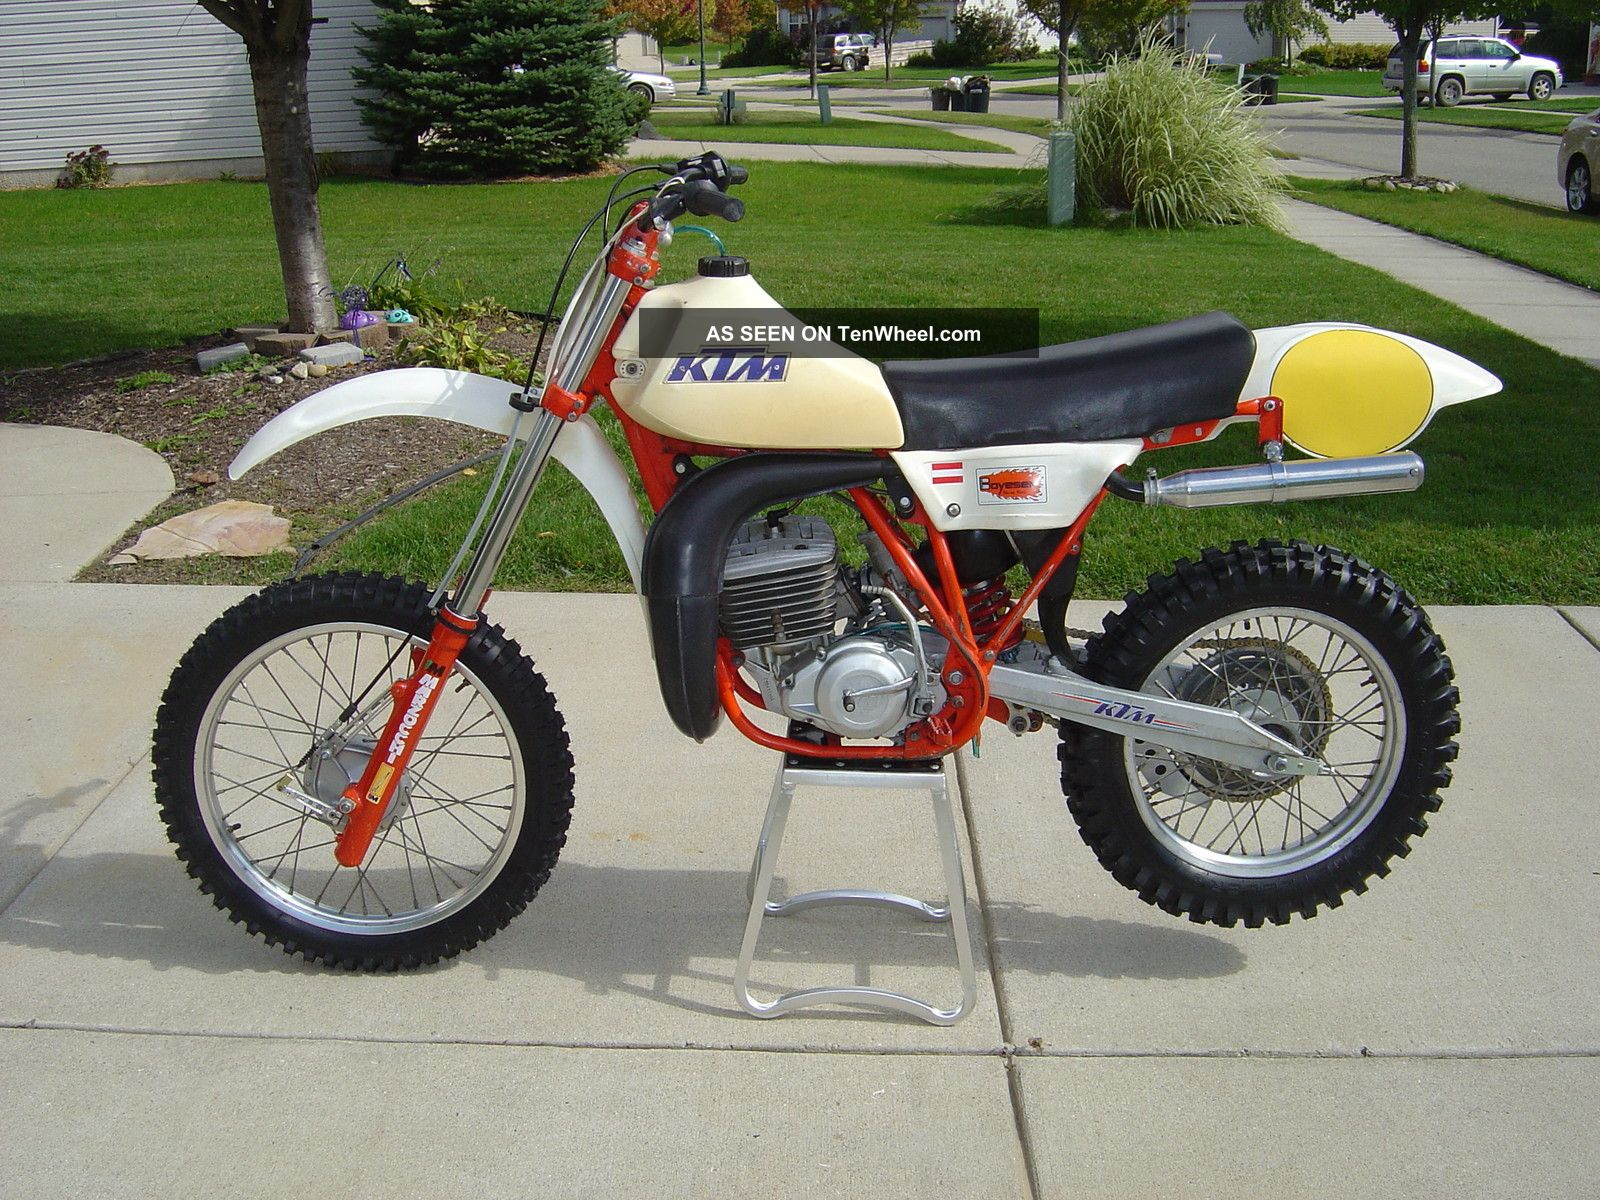 1982 Ktm 250 / Ii Mc Typ 542 Other photo